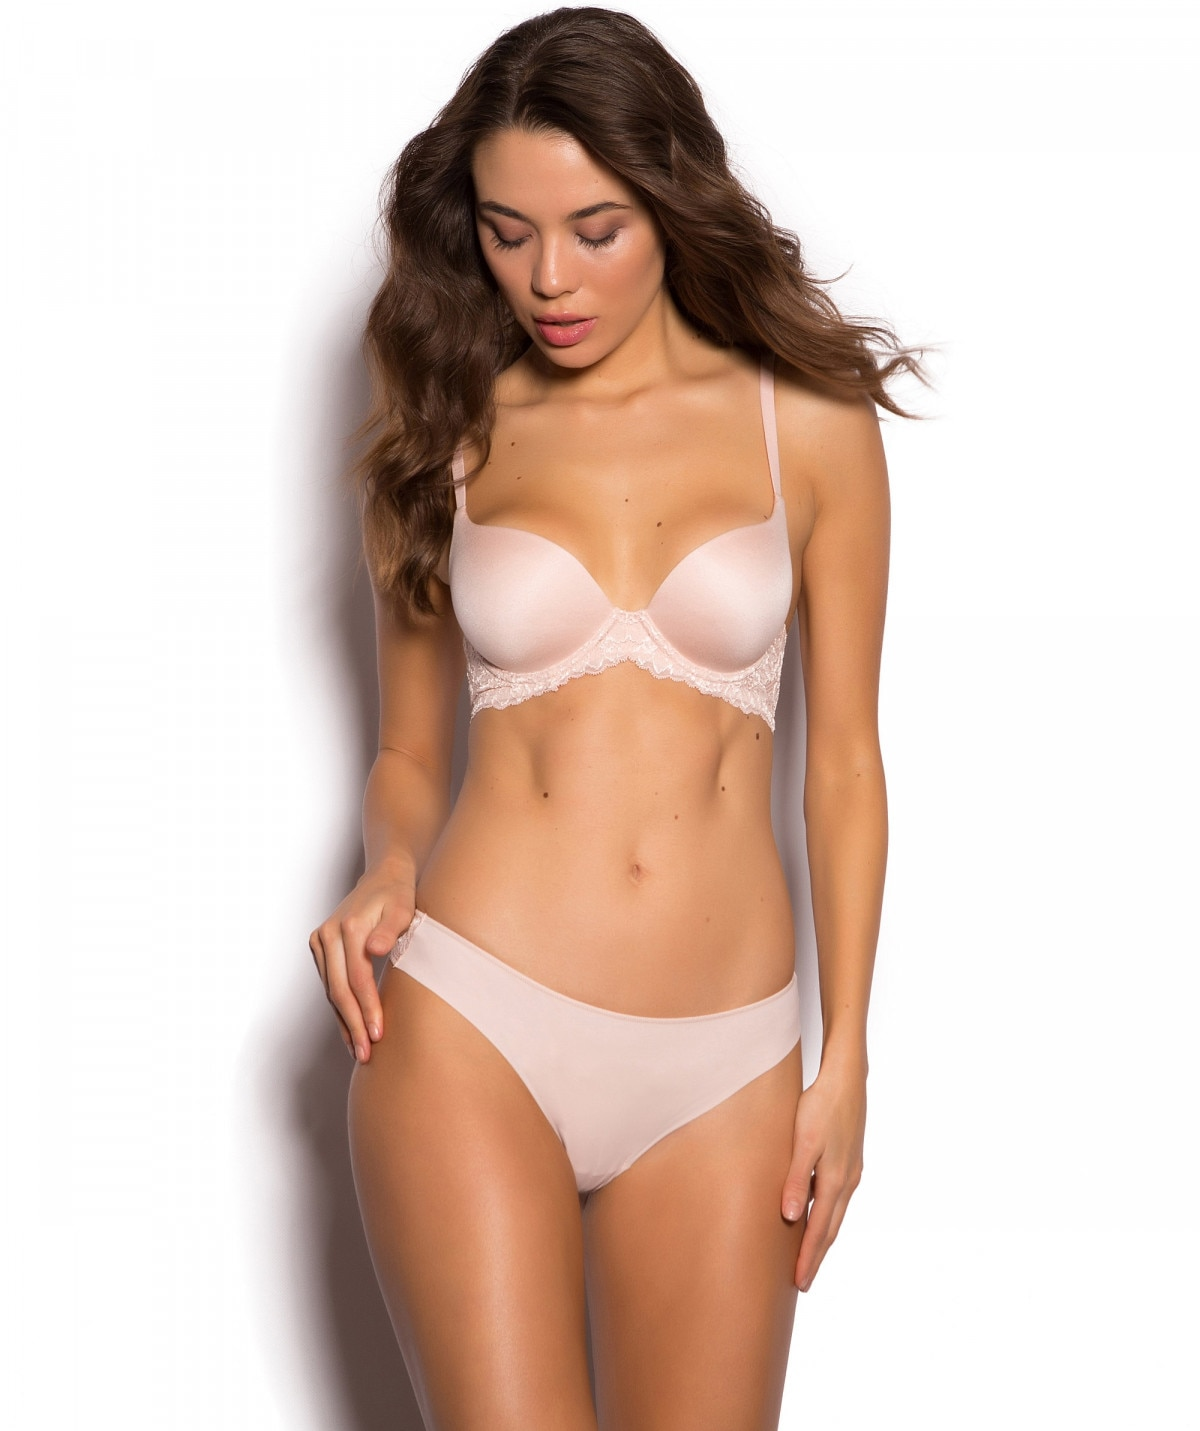 9fa3cfba6b874 Body Bliss Lace Contour Bra - Blush Pink.  54.99.  54.99